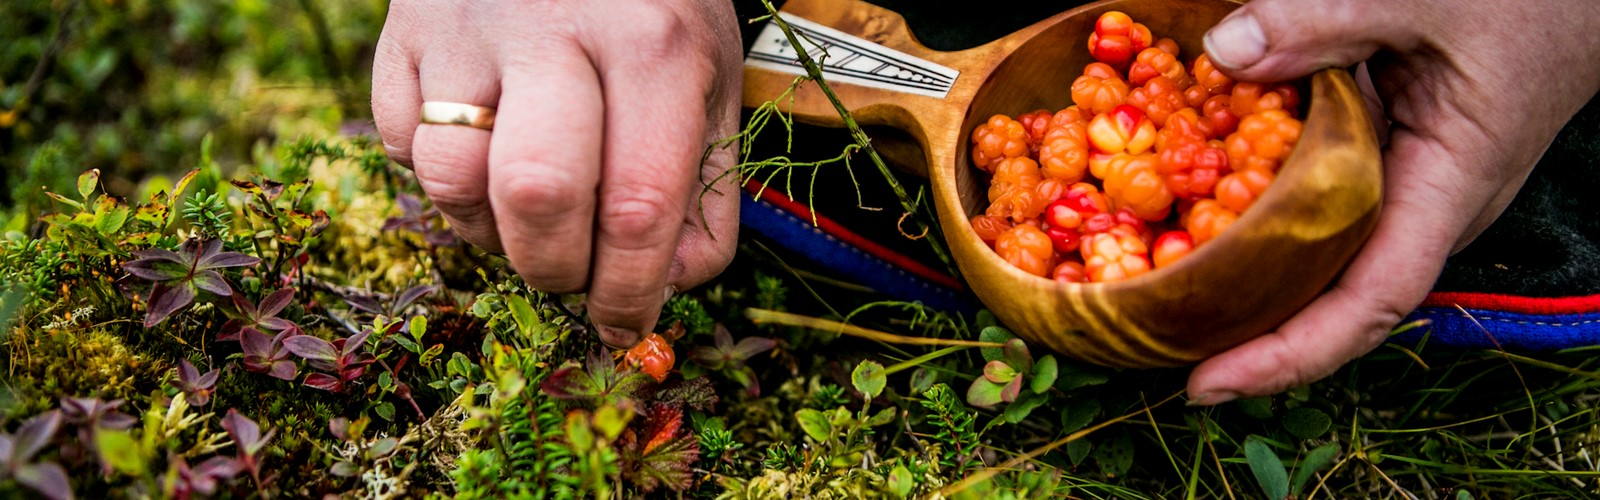 PICKING CLOUDBERRIES FINNMARK NORWAY PHOTO CHRISTIAN ROTH CHRISTENSEN 5848233 Foto Christian Roth Christensen